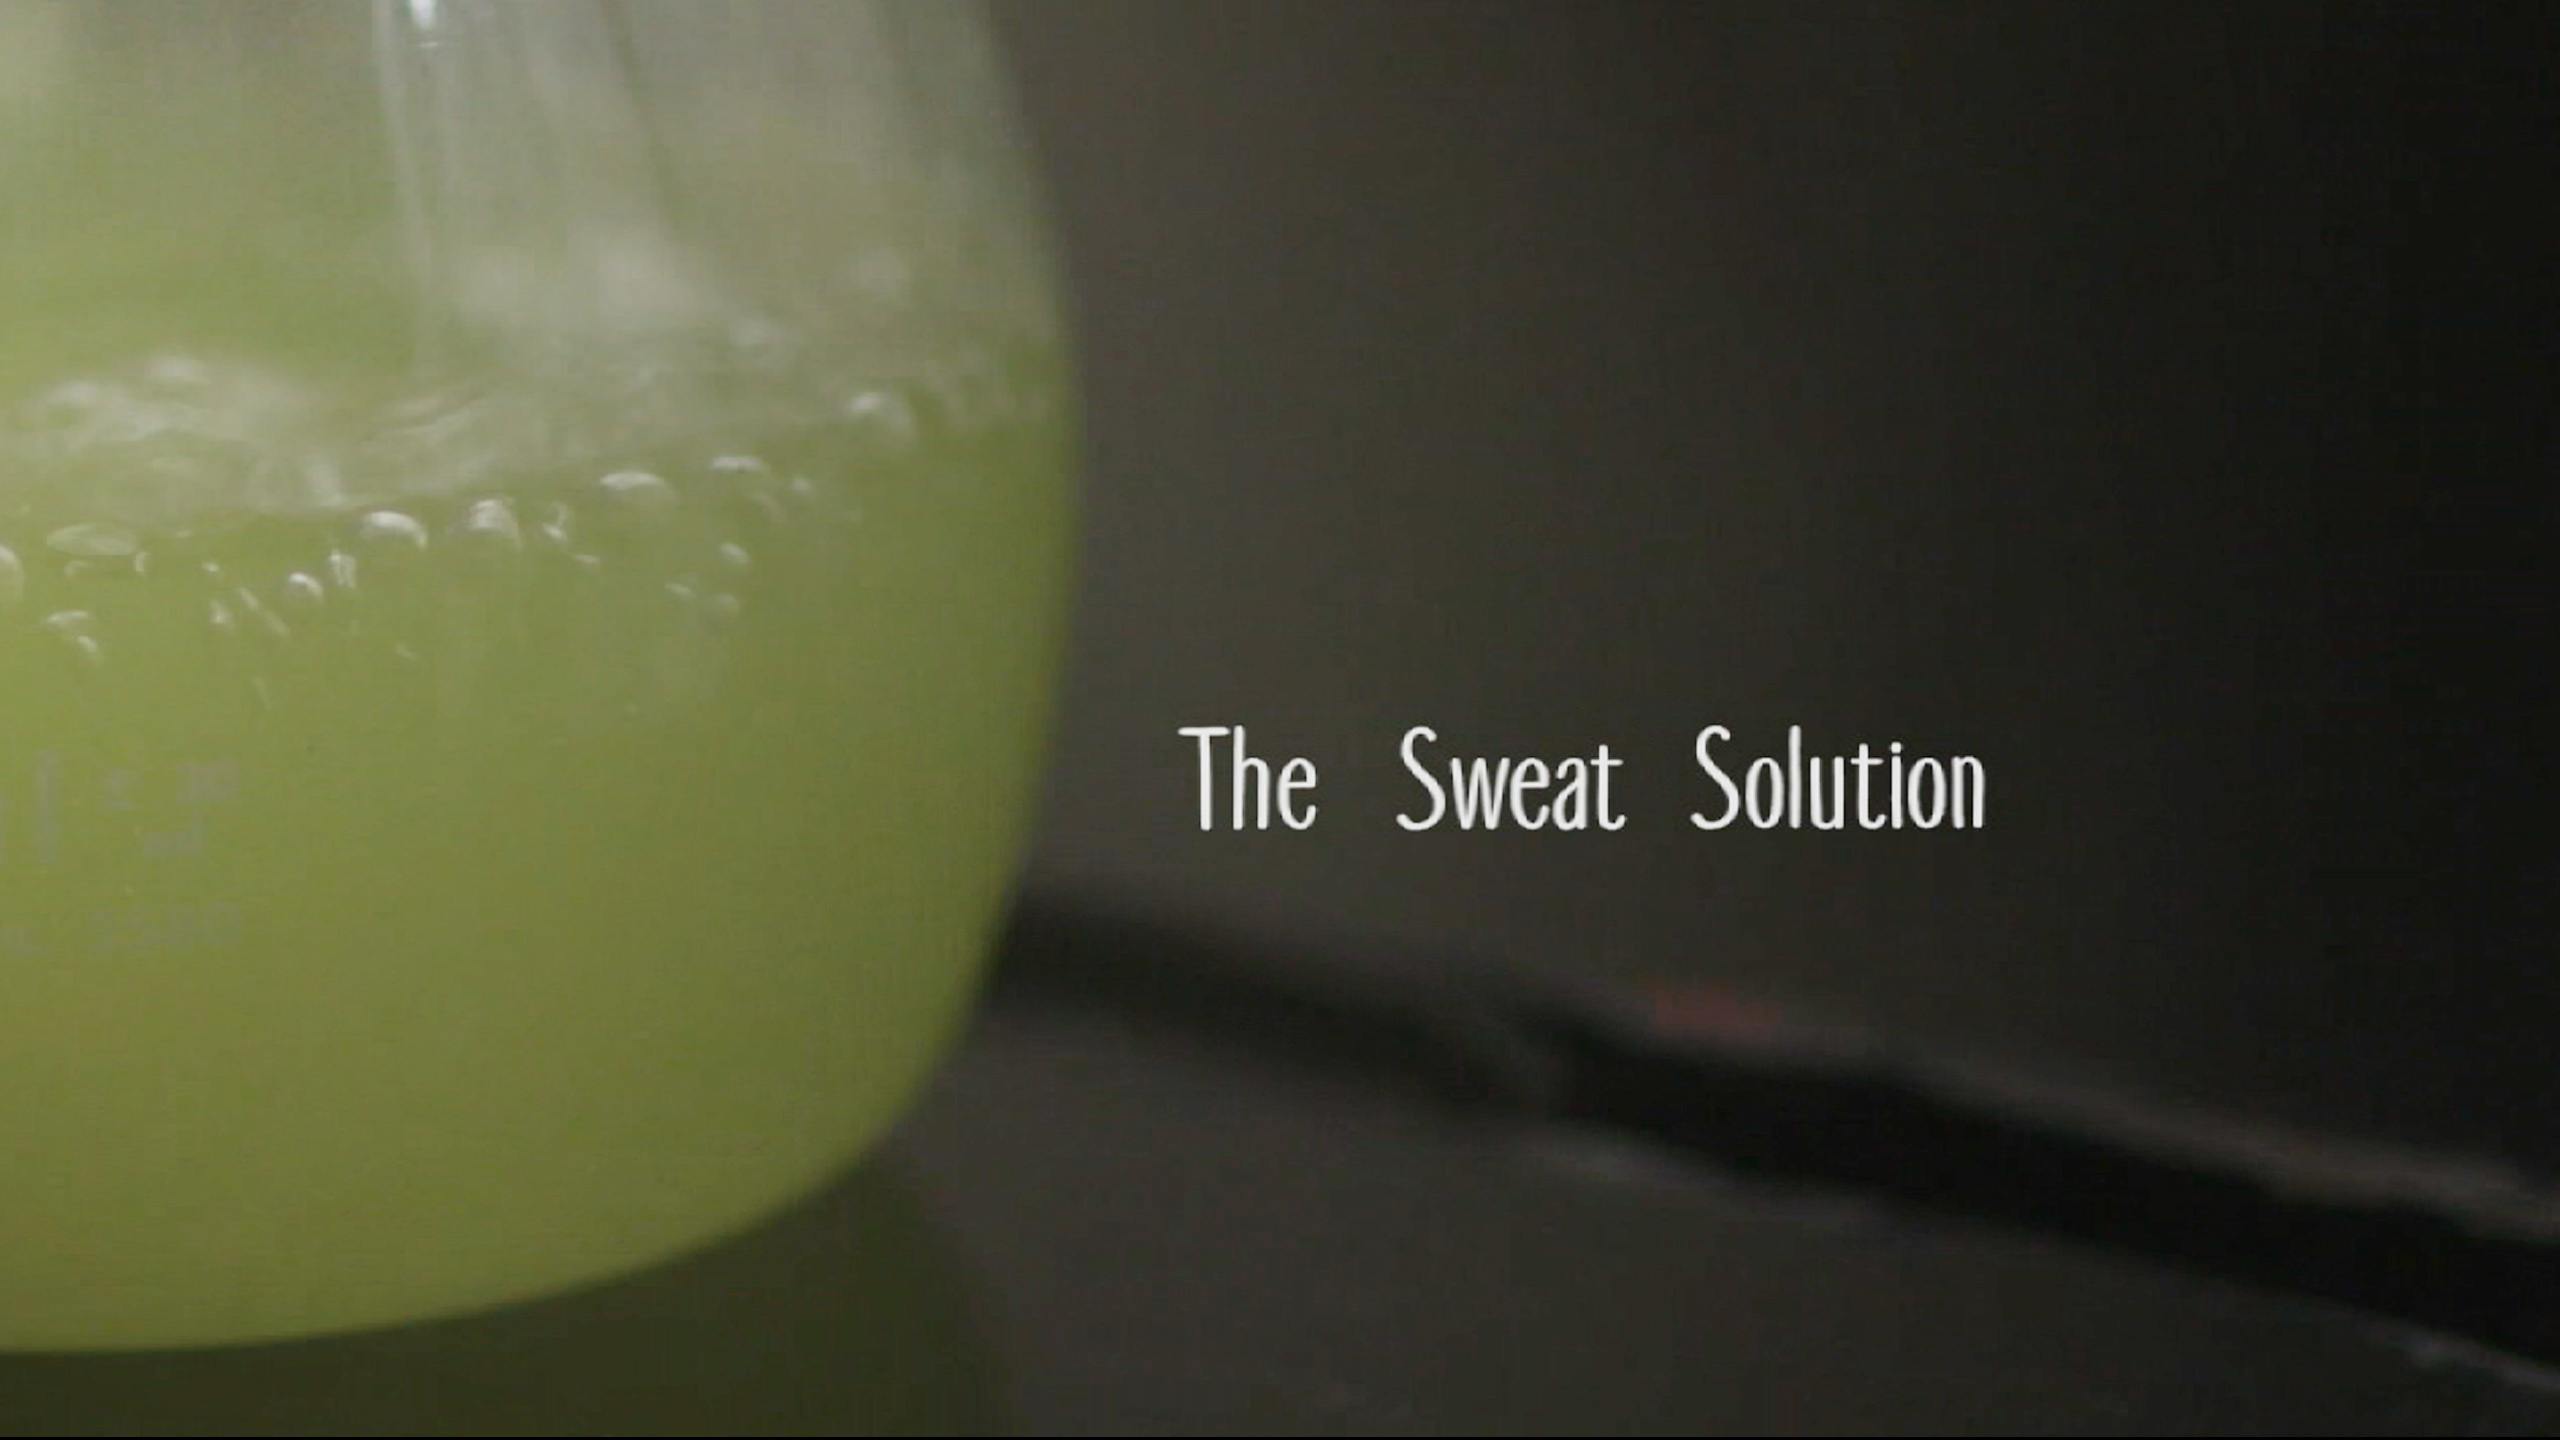 SEC Storied: The Sweat Solution